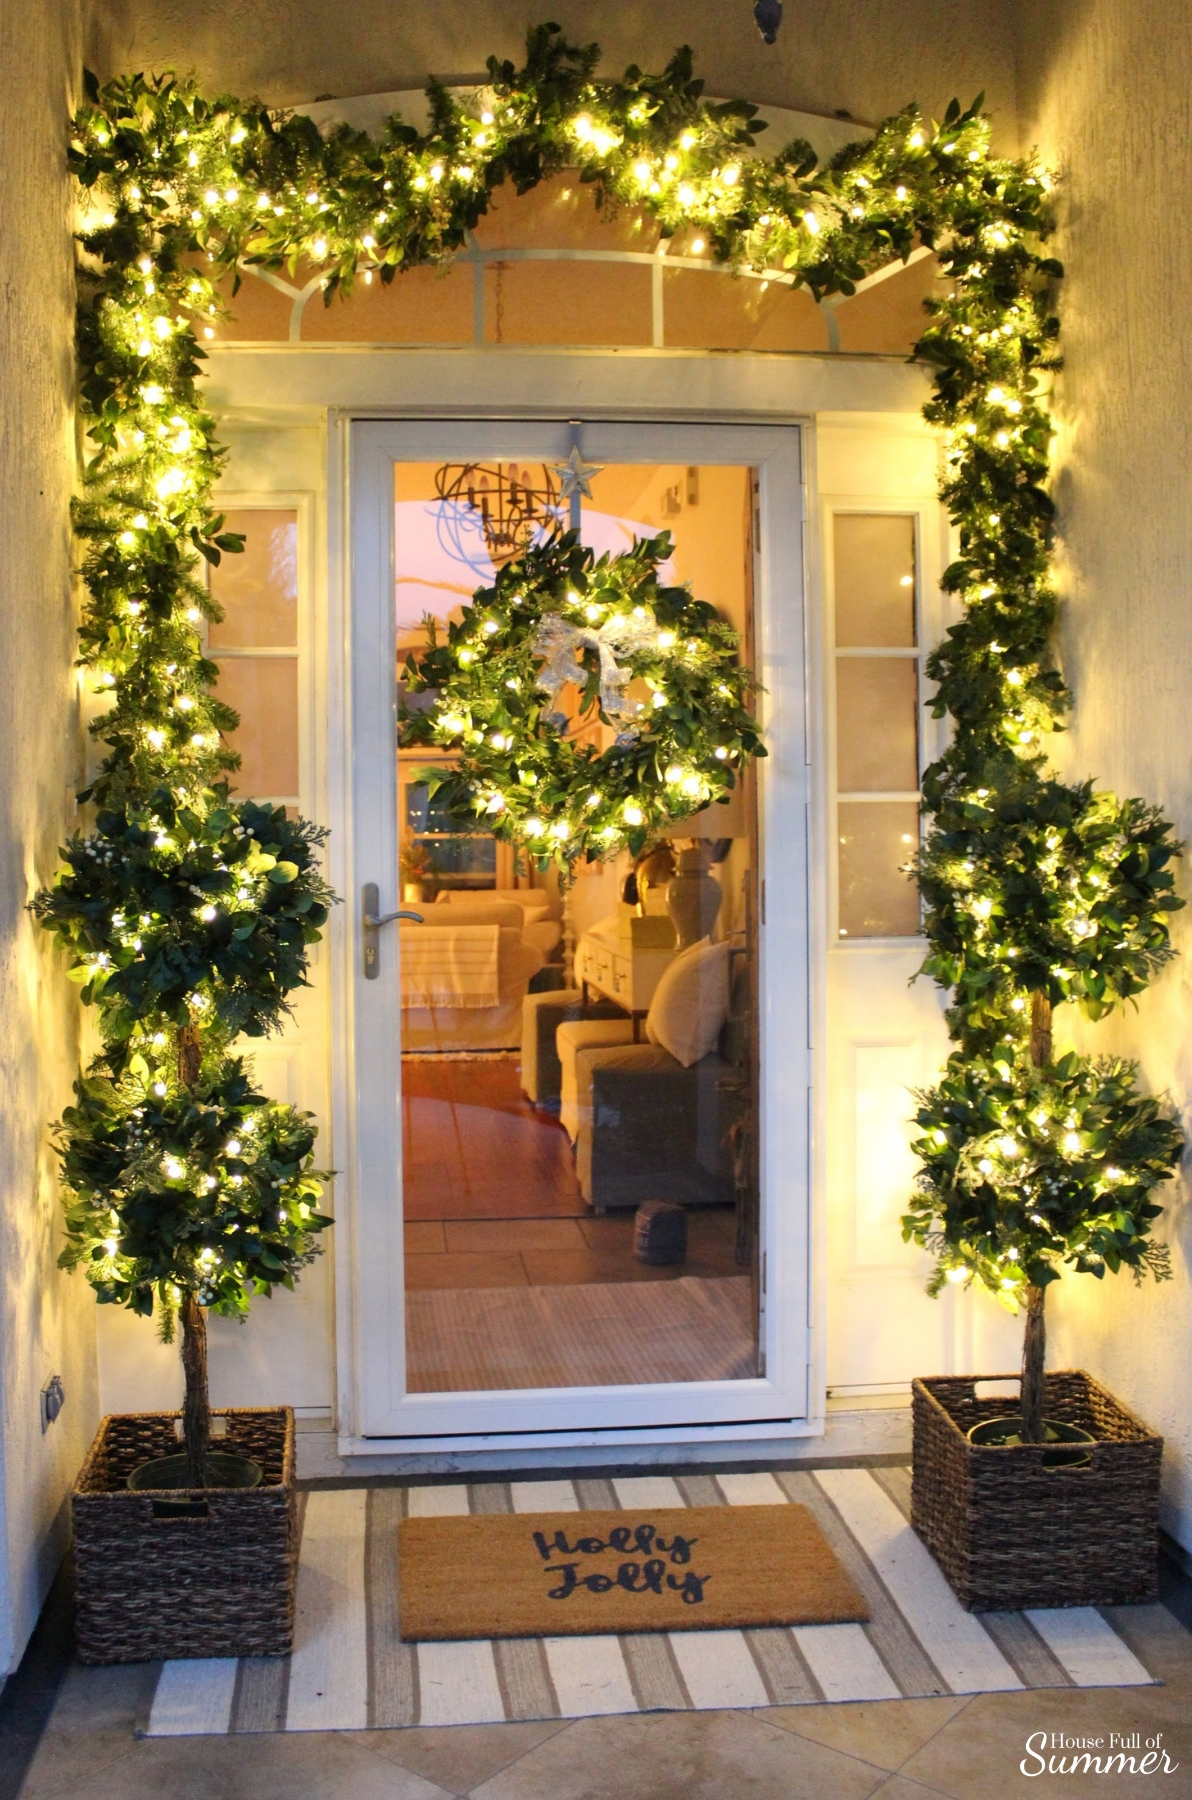 How to Decorate Your Front Porch for Christmas in a Warm Climate | Outdoor Christmas decor if you have warm weather! Florida style, desert Christmas decor, Christmas in the South, outdoor garland, greenery, balsamhill #housefullofsummer #balsamhill House Full of Summer